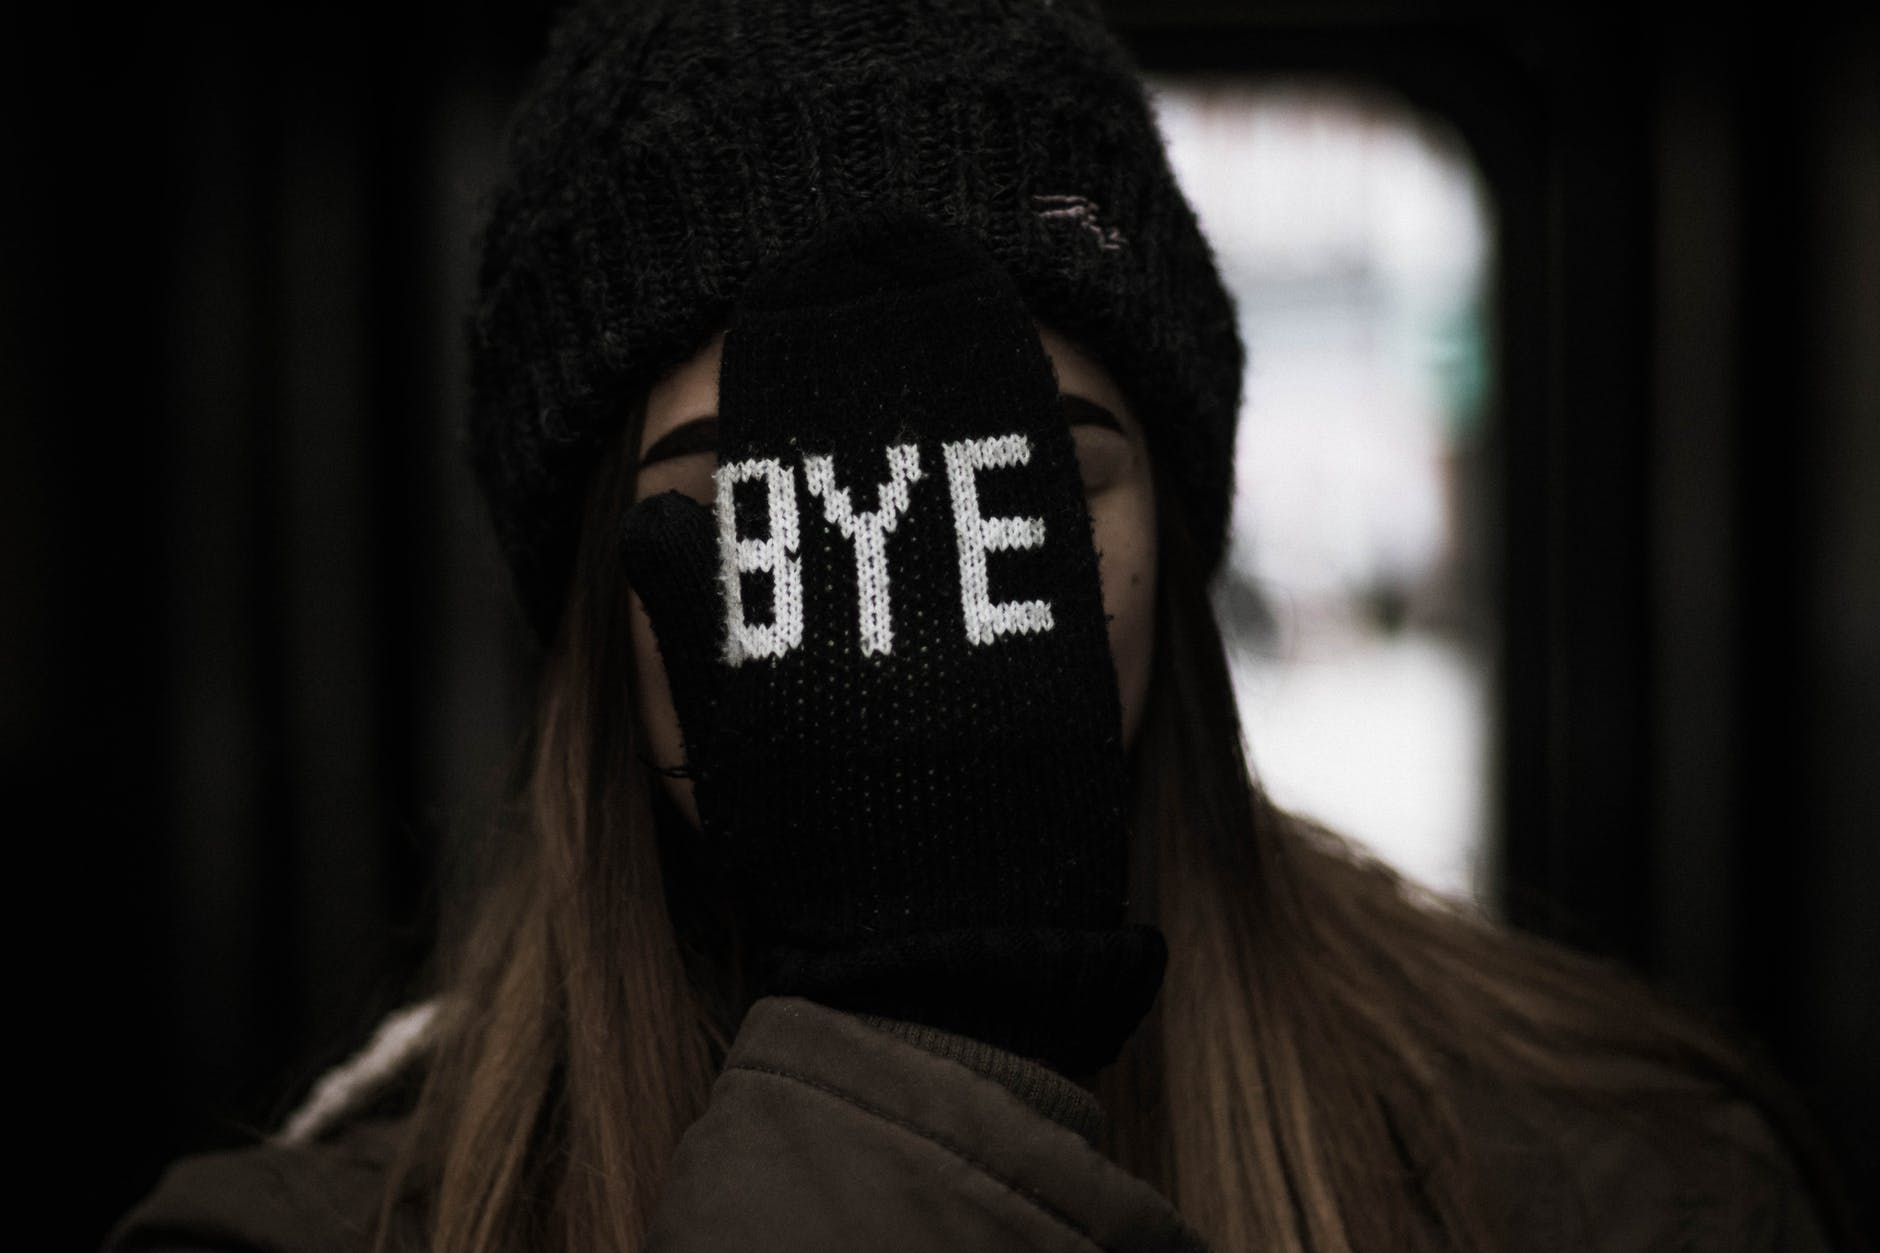 girl covering her face with glove saying bye